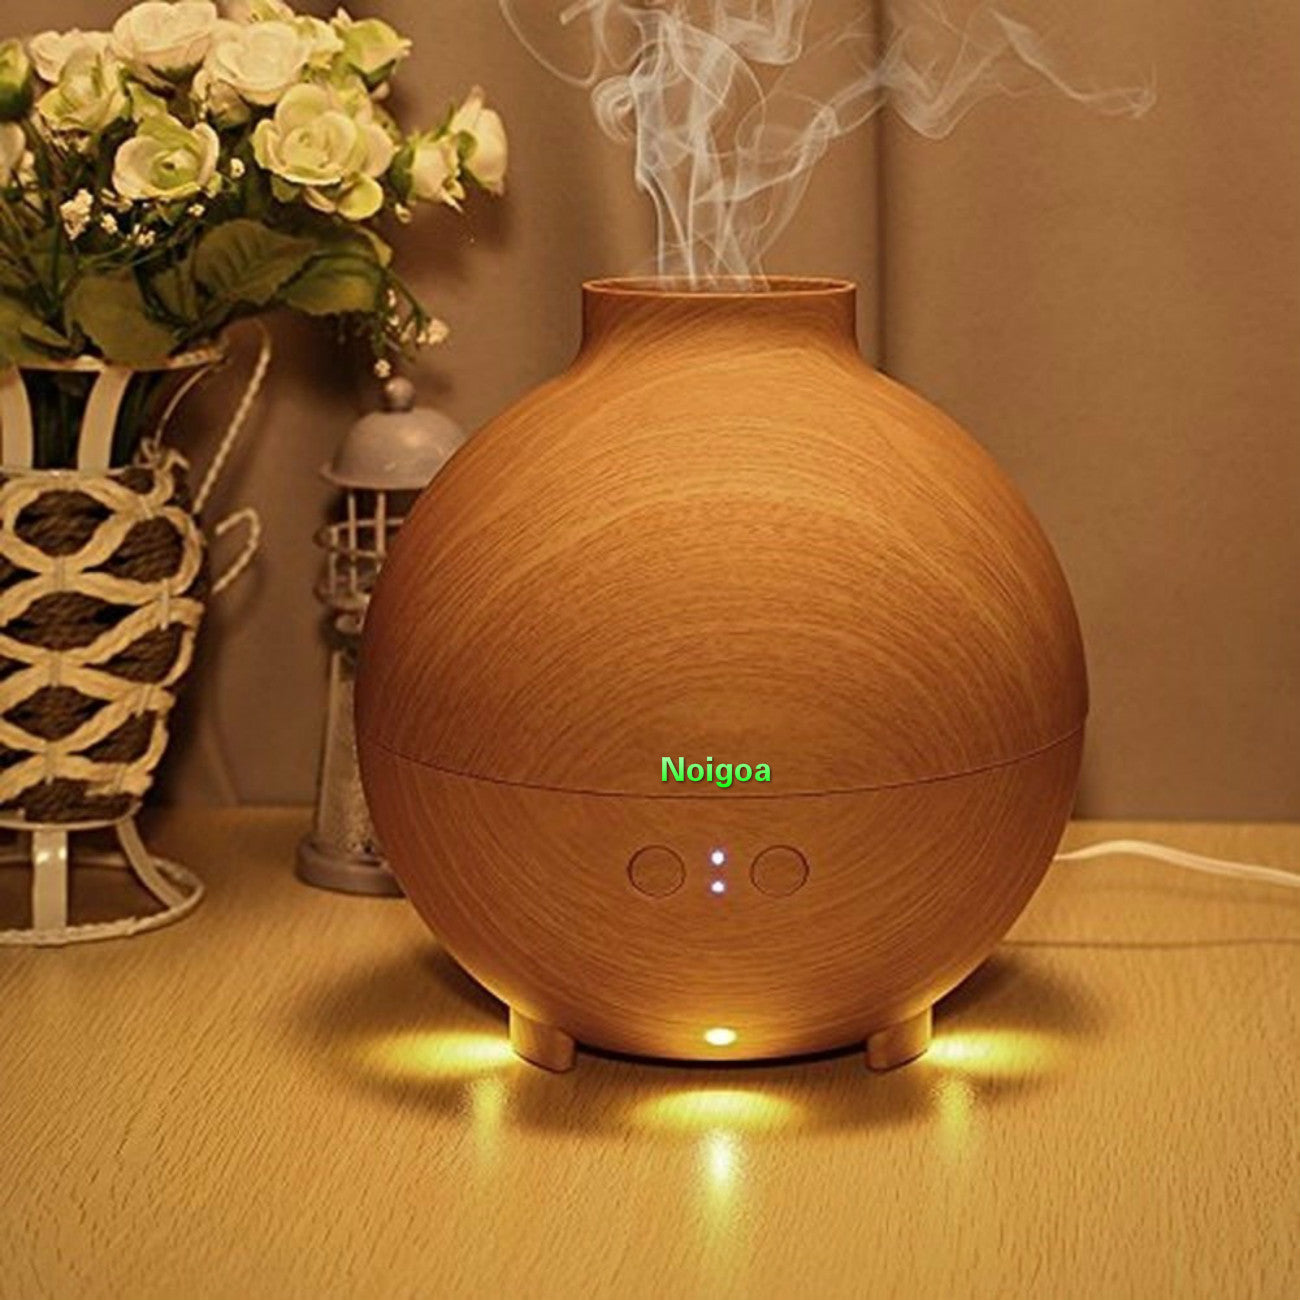 600ml aromatherapy essential oil aroma nebulizer diffuser / Luxury Decorations Cool Mist Humidifier Globe Ball Shaped Premium Therapy Air Freshener Large Essential Oil Aroma Diffuser